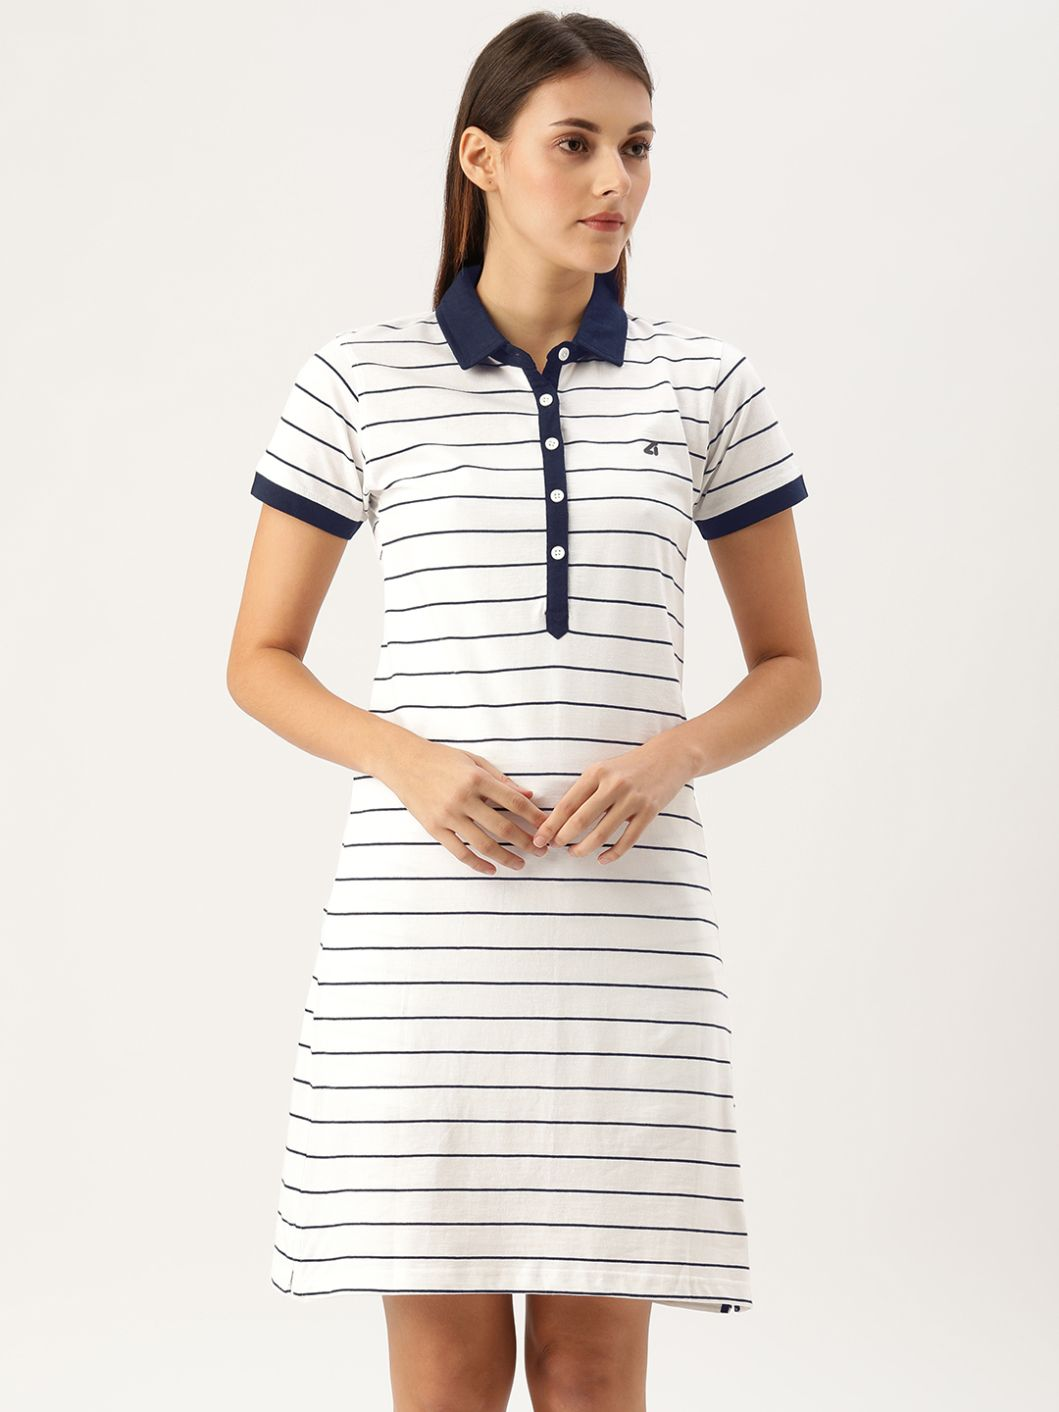 SJ Active Mariner White / Navy Polo Dress